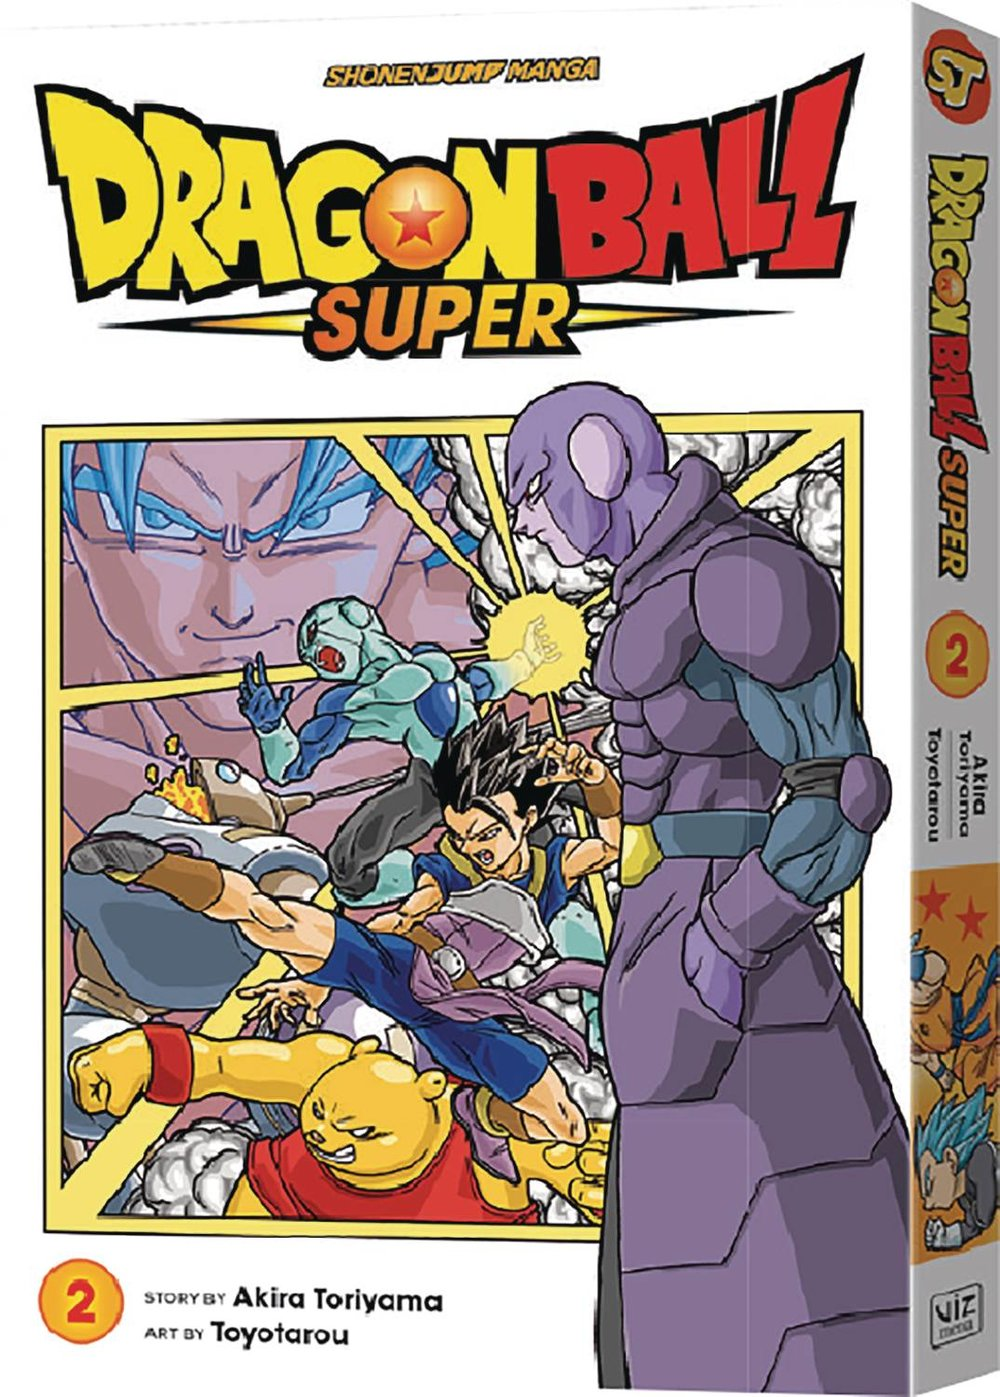 DRAGON BALL SUPER GN 2.jpg